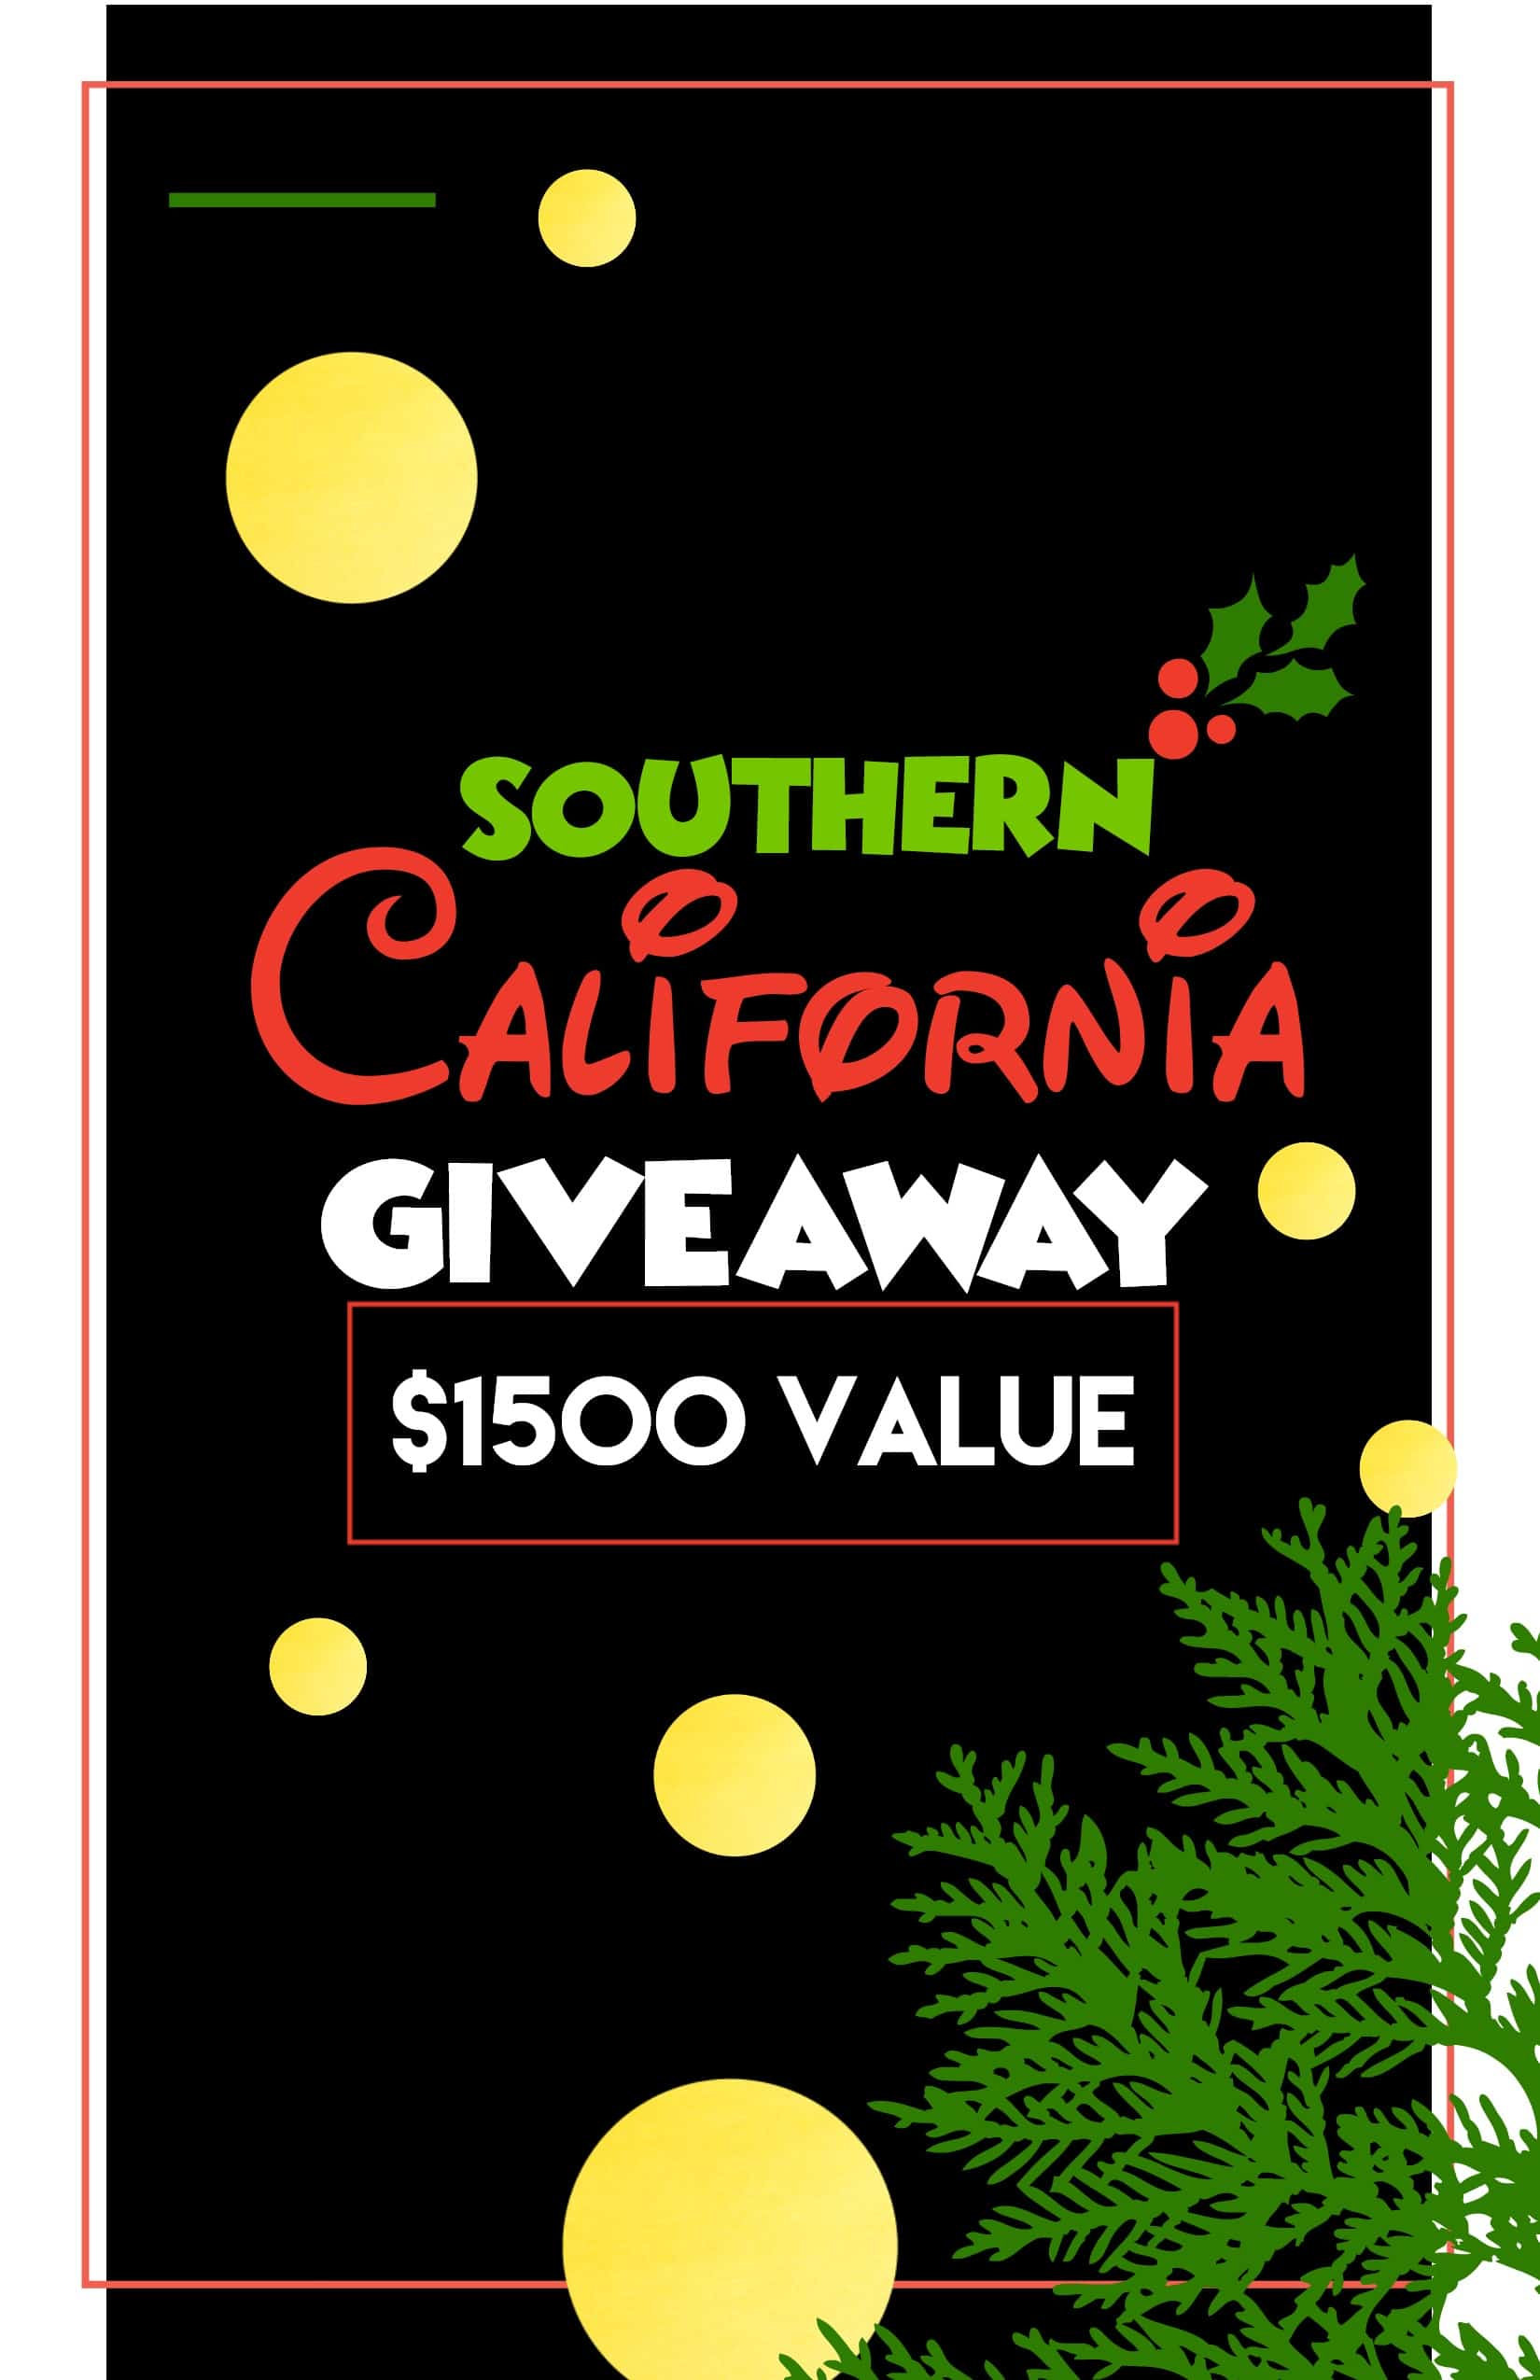 Southern California Giveaway on www.girllovesglam.com